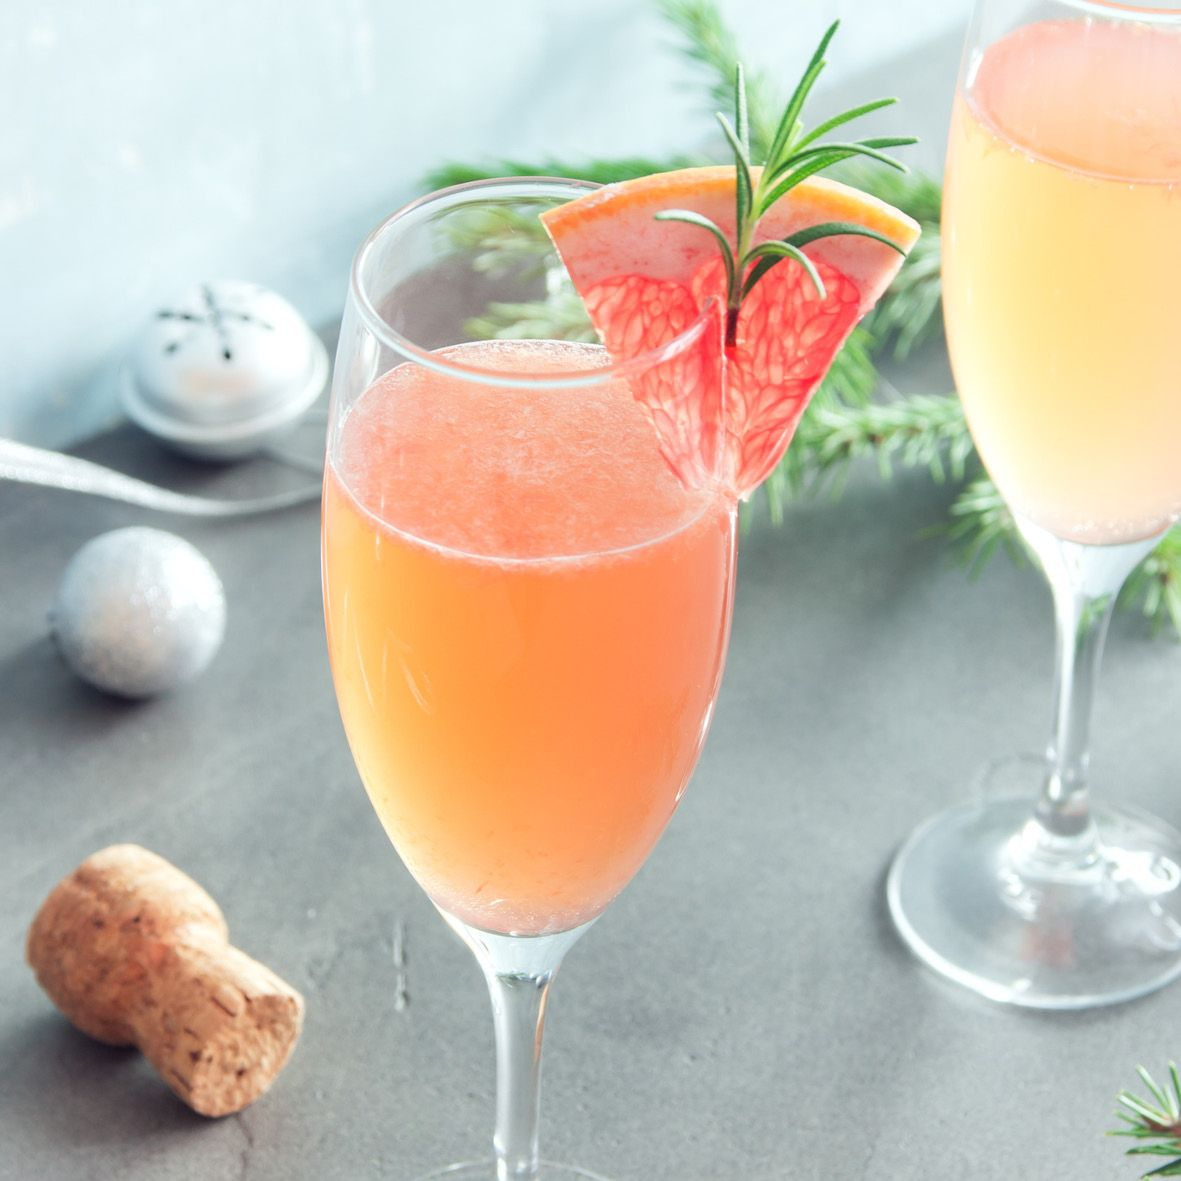 Rosemary_and_grapefruit_mimosa.jpg